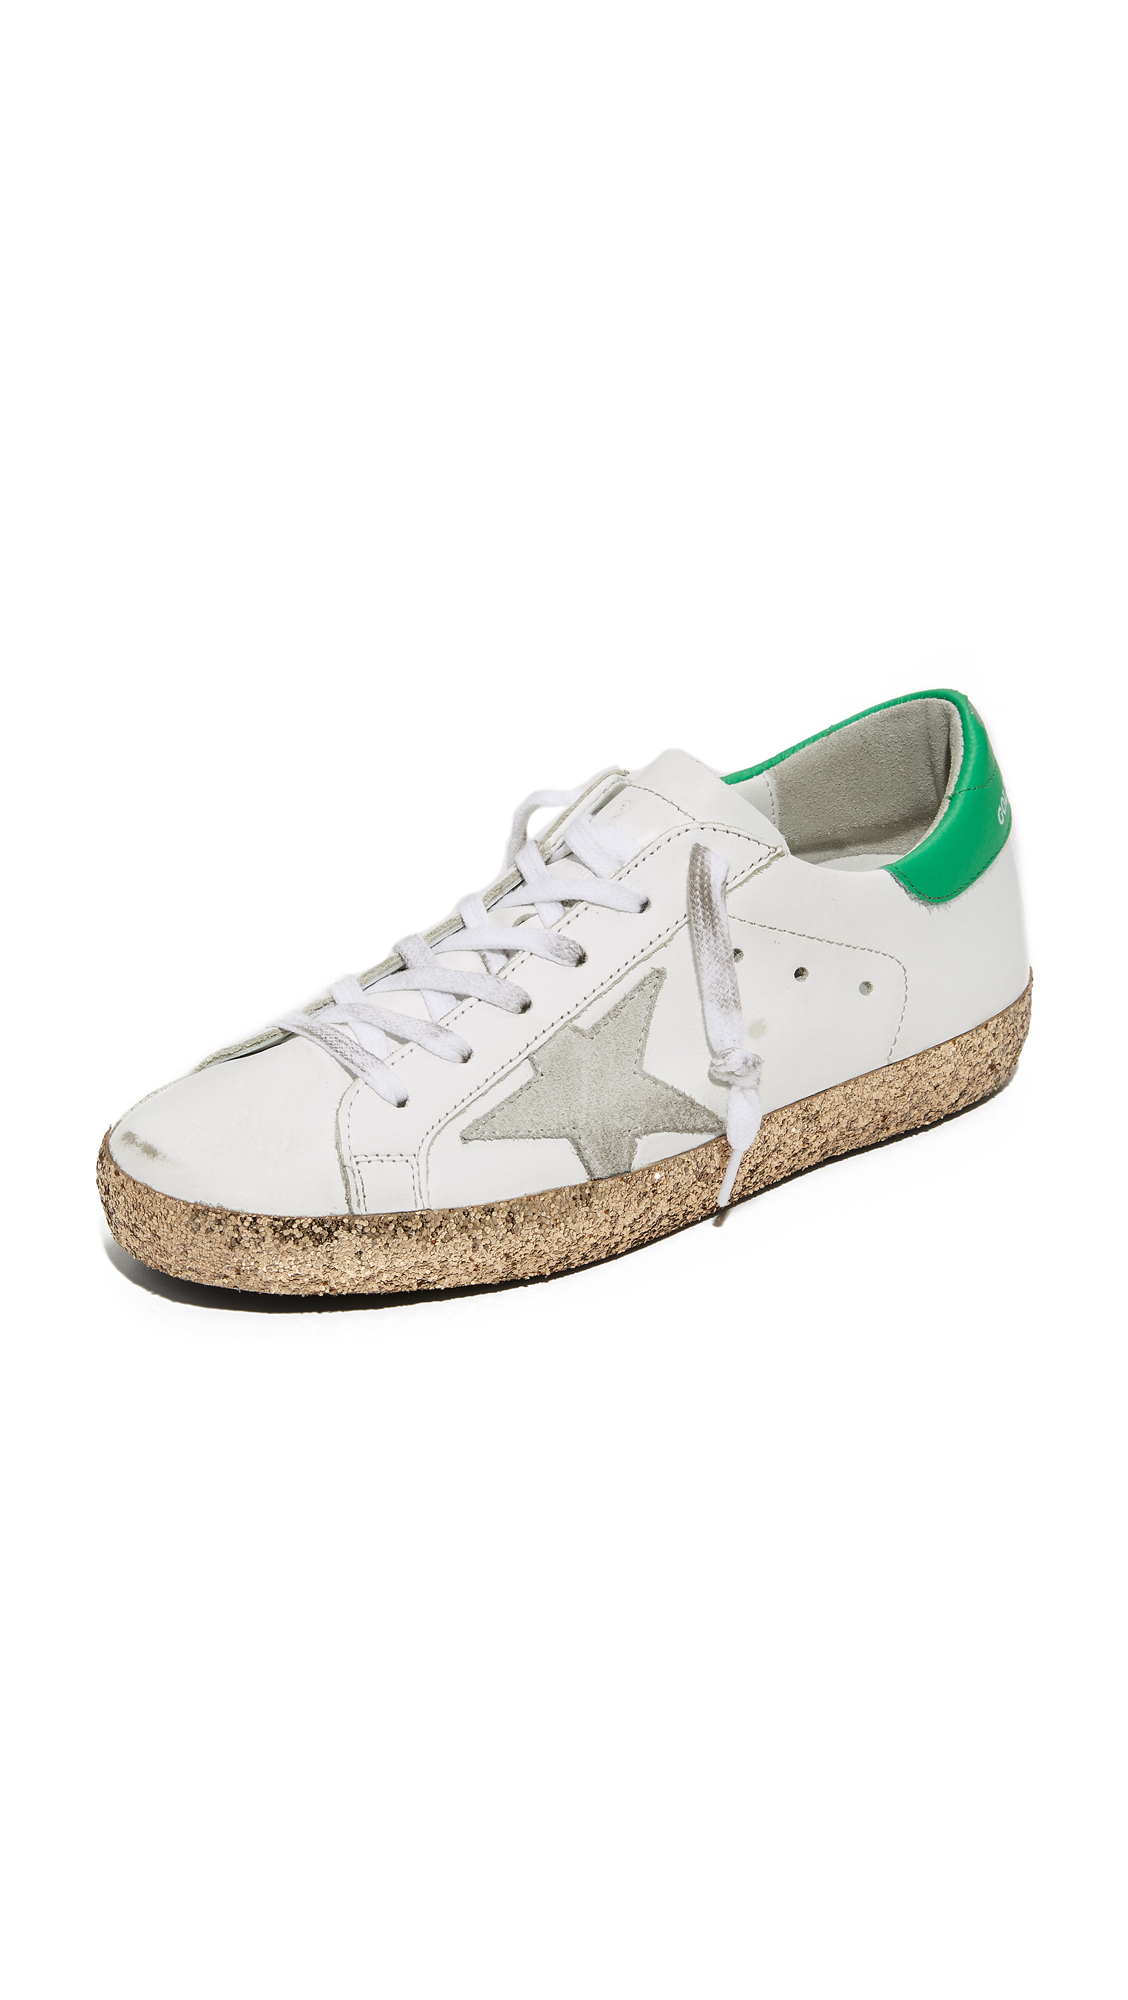 Golden Goose Superstar Sneakers - White/Gold